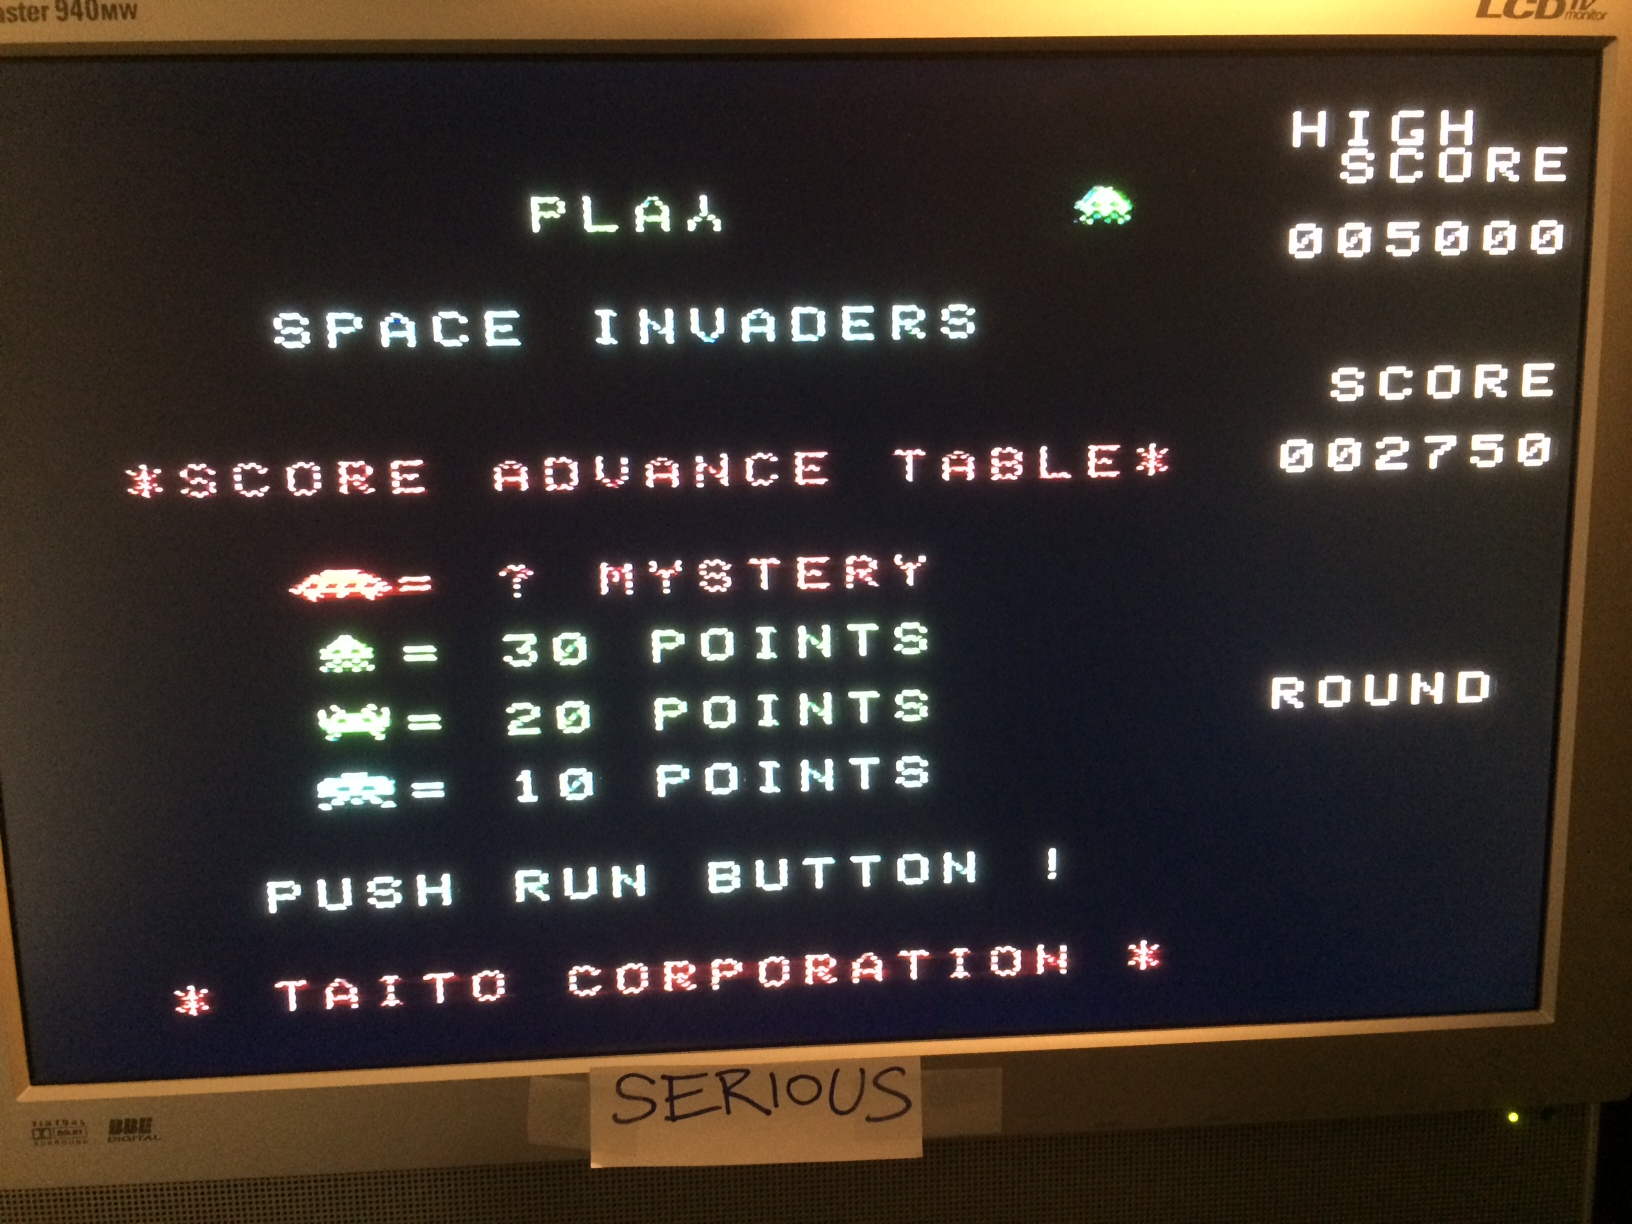 Serious: Space Invaders: Fukkatsu no Hi [Classic Mode] (TurboGrafx-16/PC Engine) 2,750 points on 2014-11-29 12:56:18